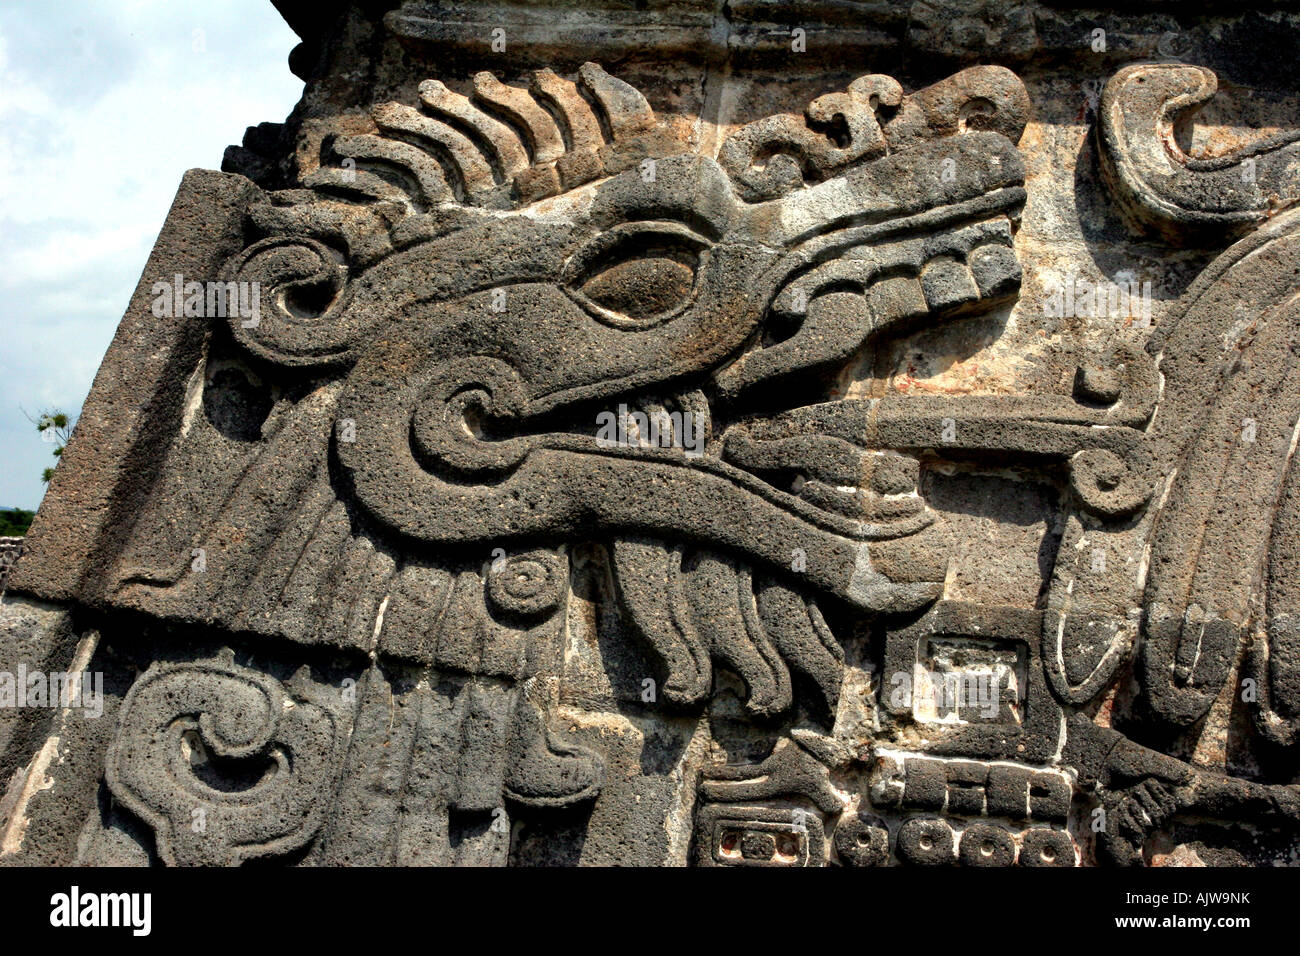 Ancient stone serpent deity carving sculpture on a mayan